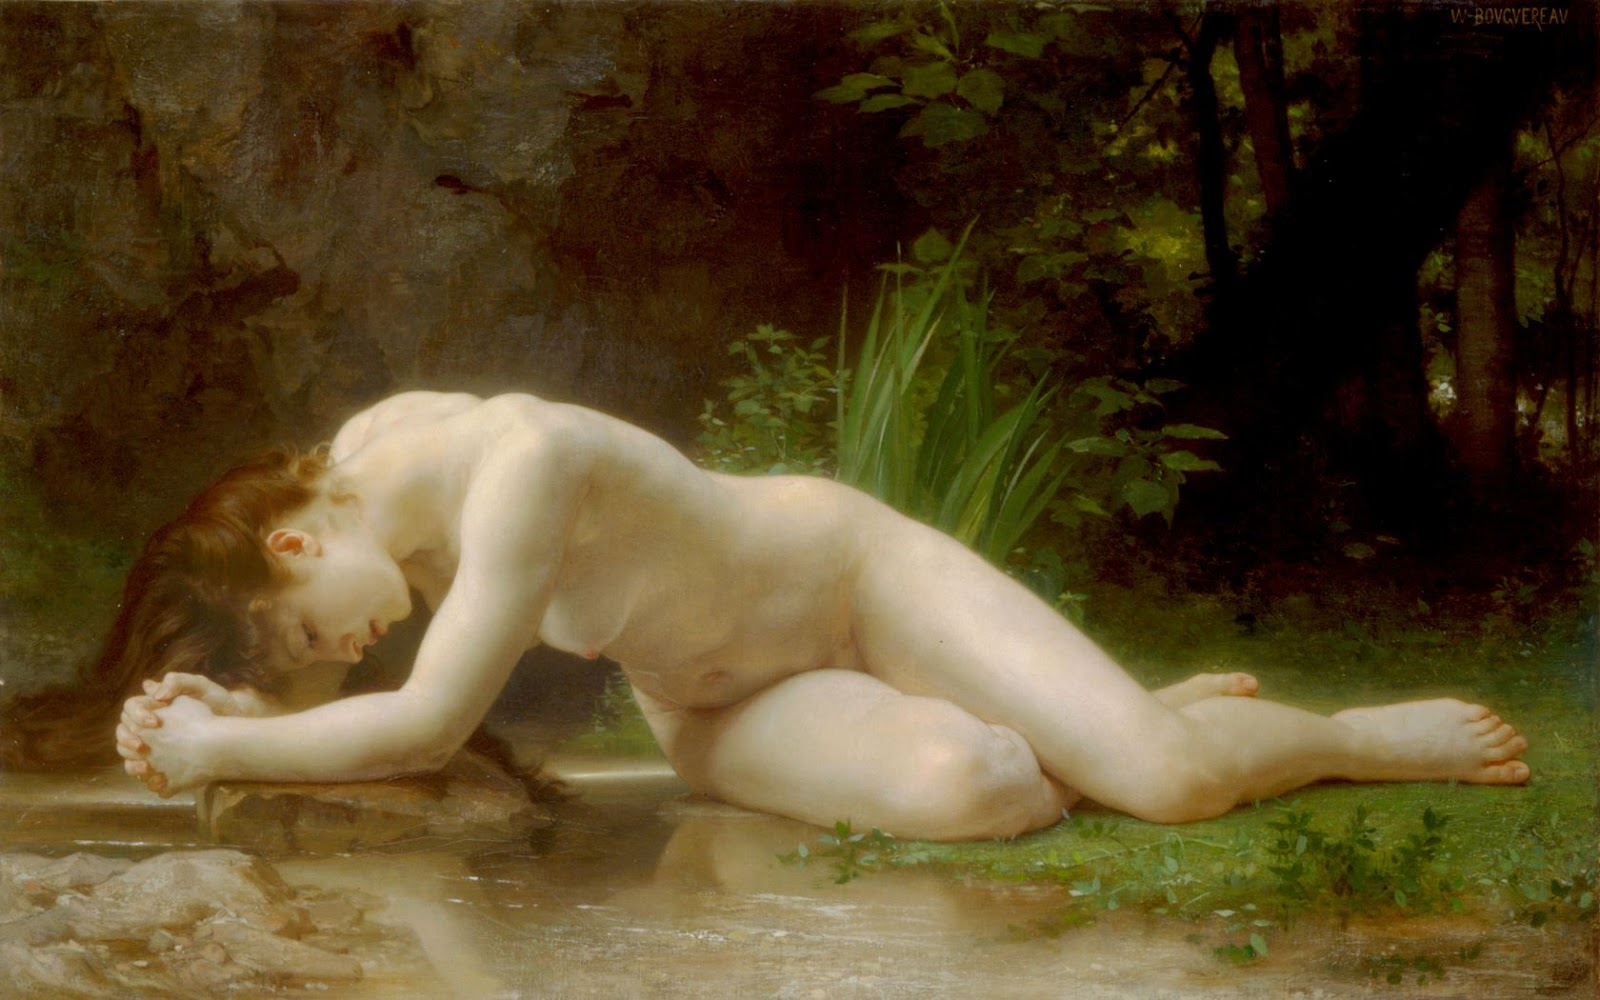 Nymph nudist sexy image